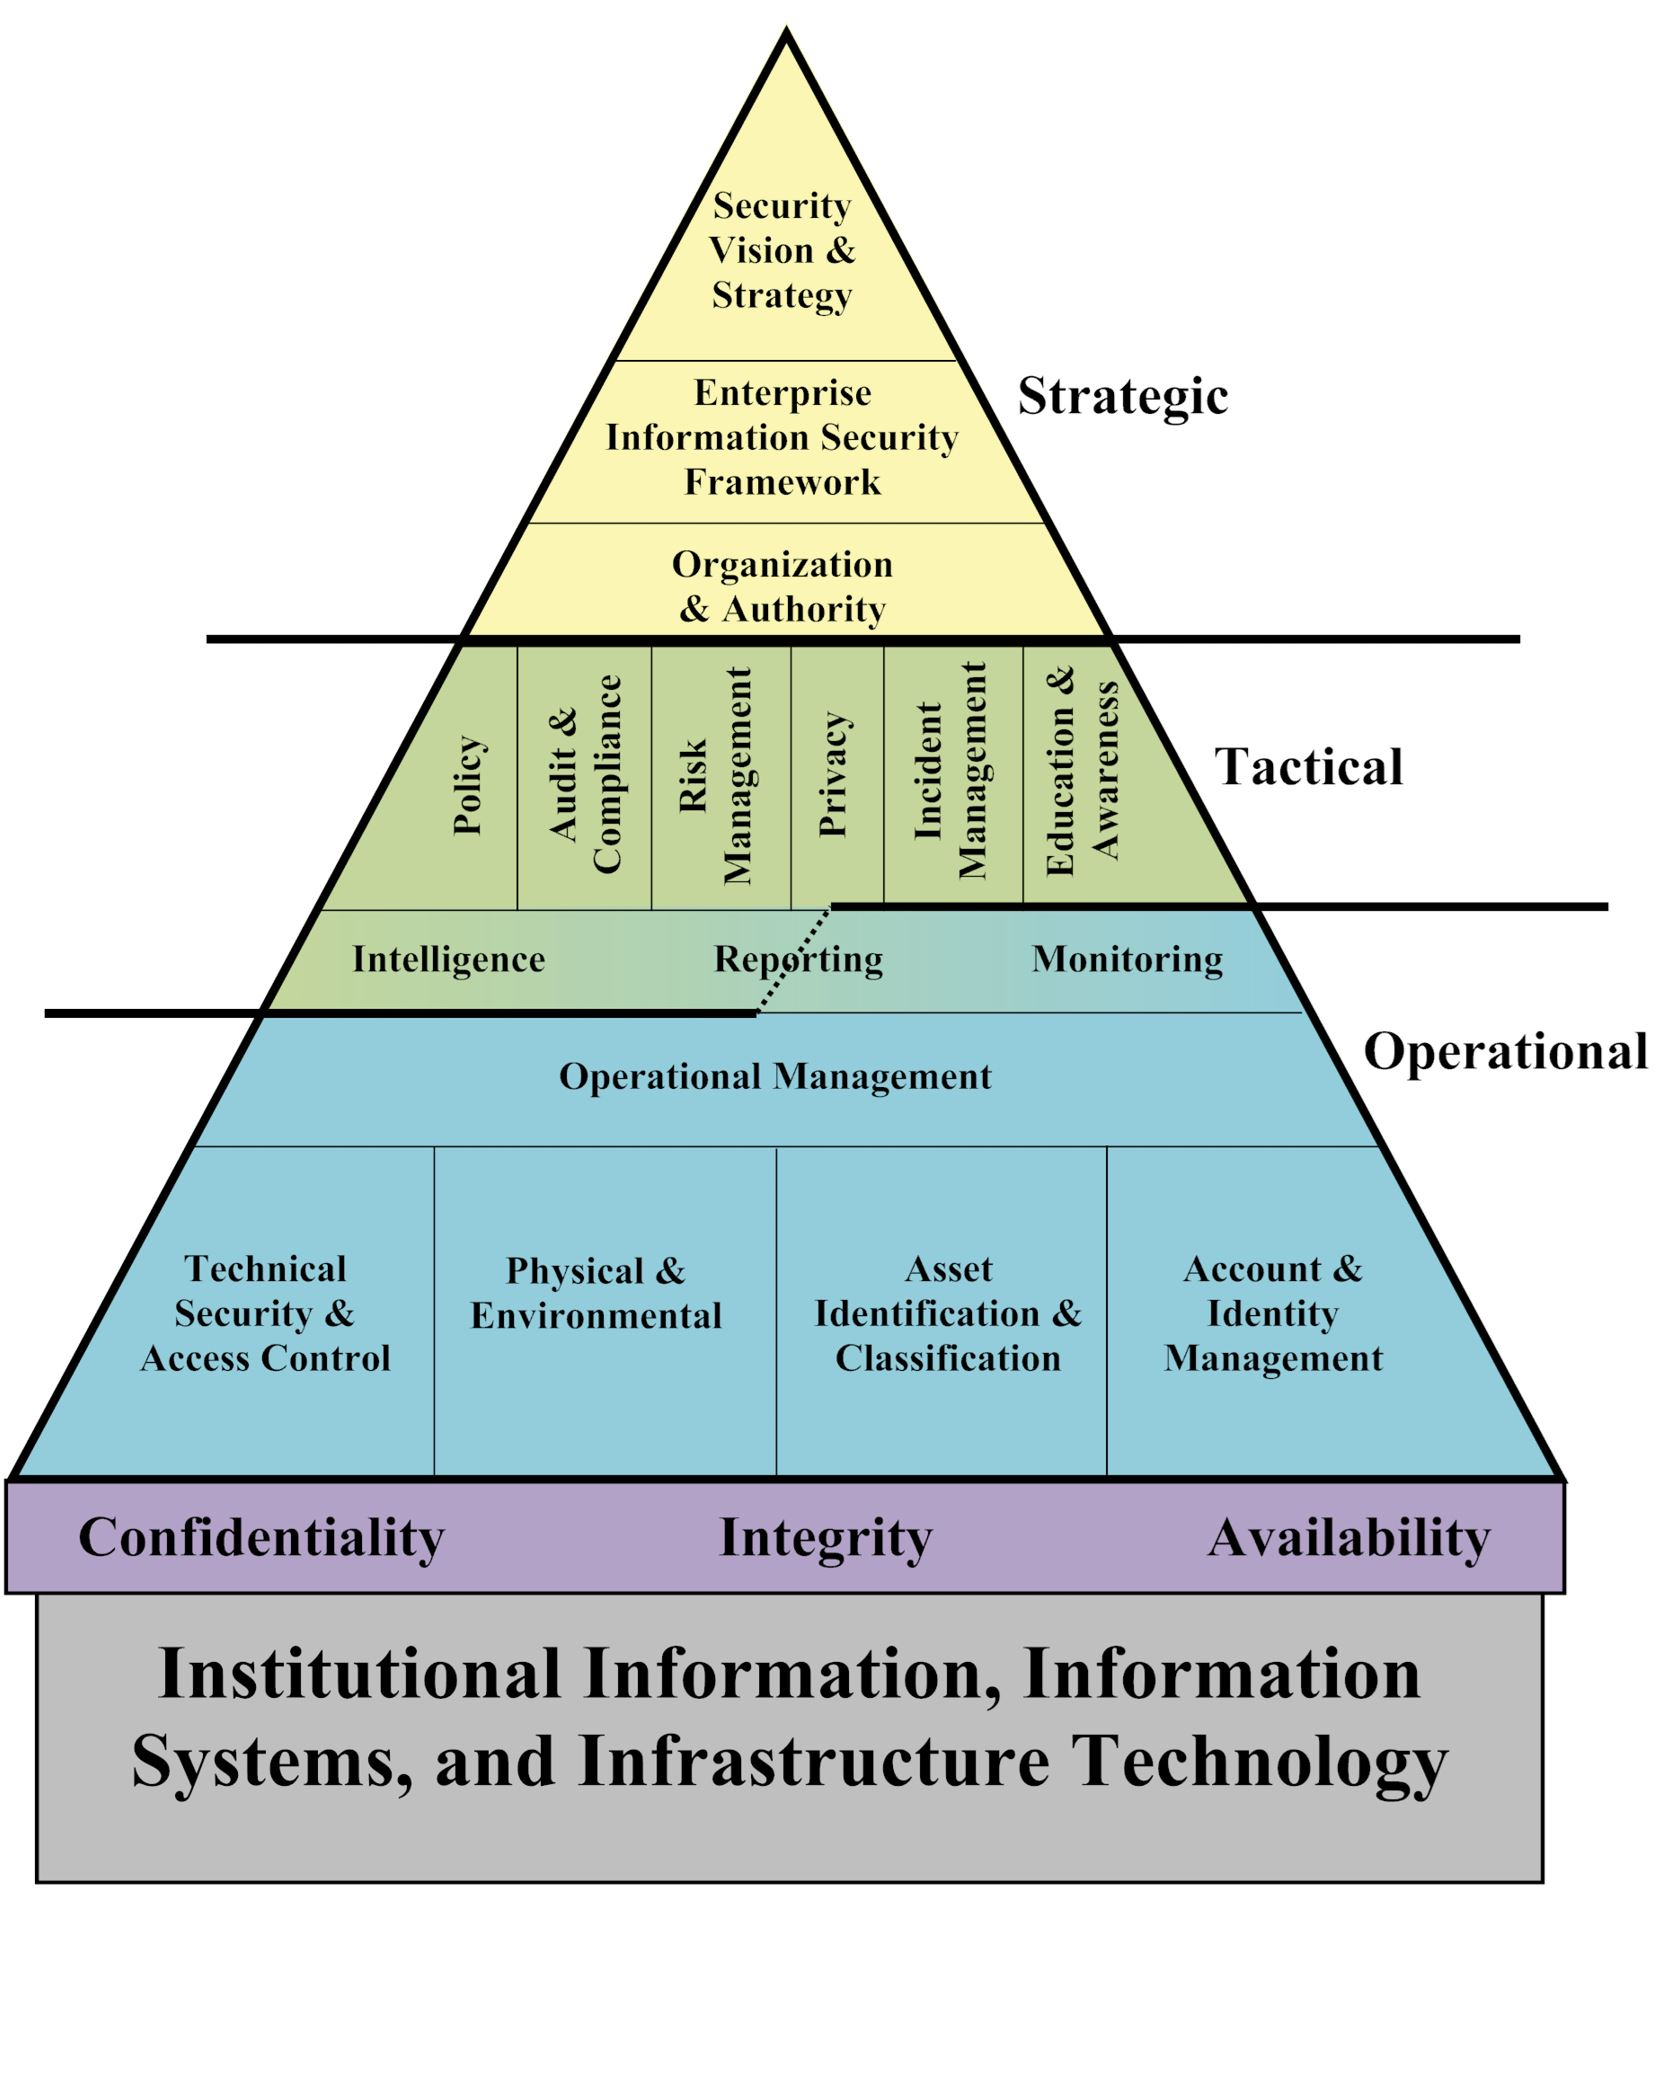 institutional information systems and infrastructure technology